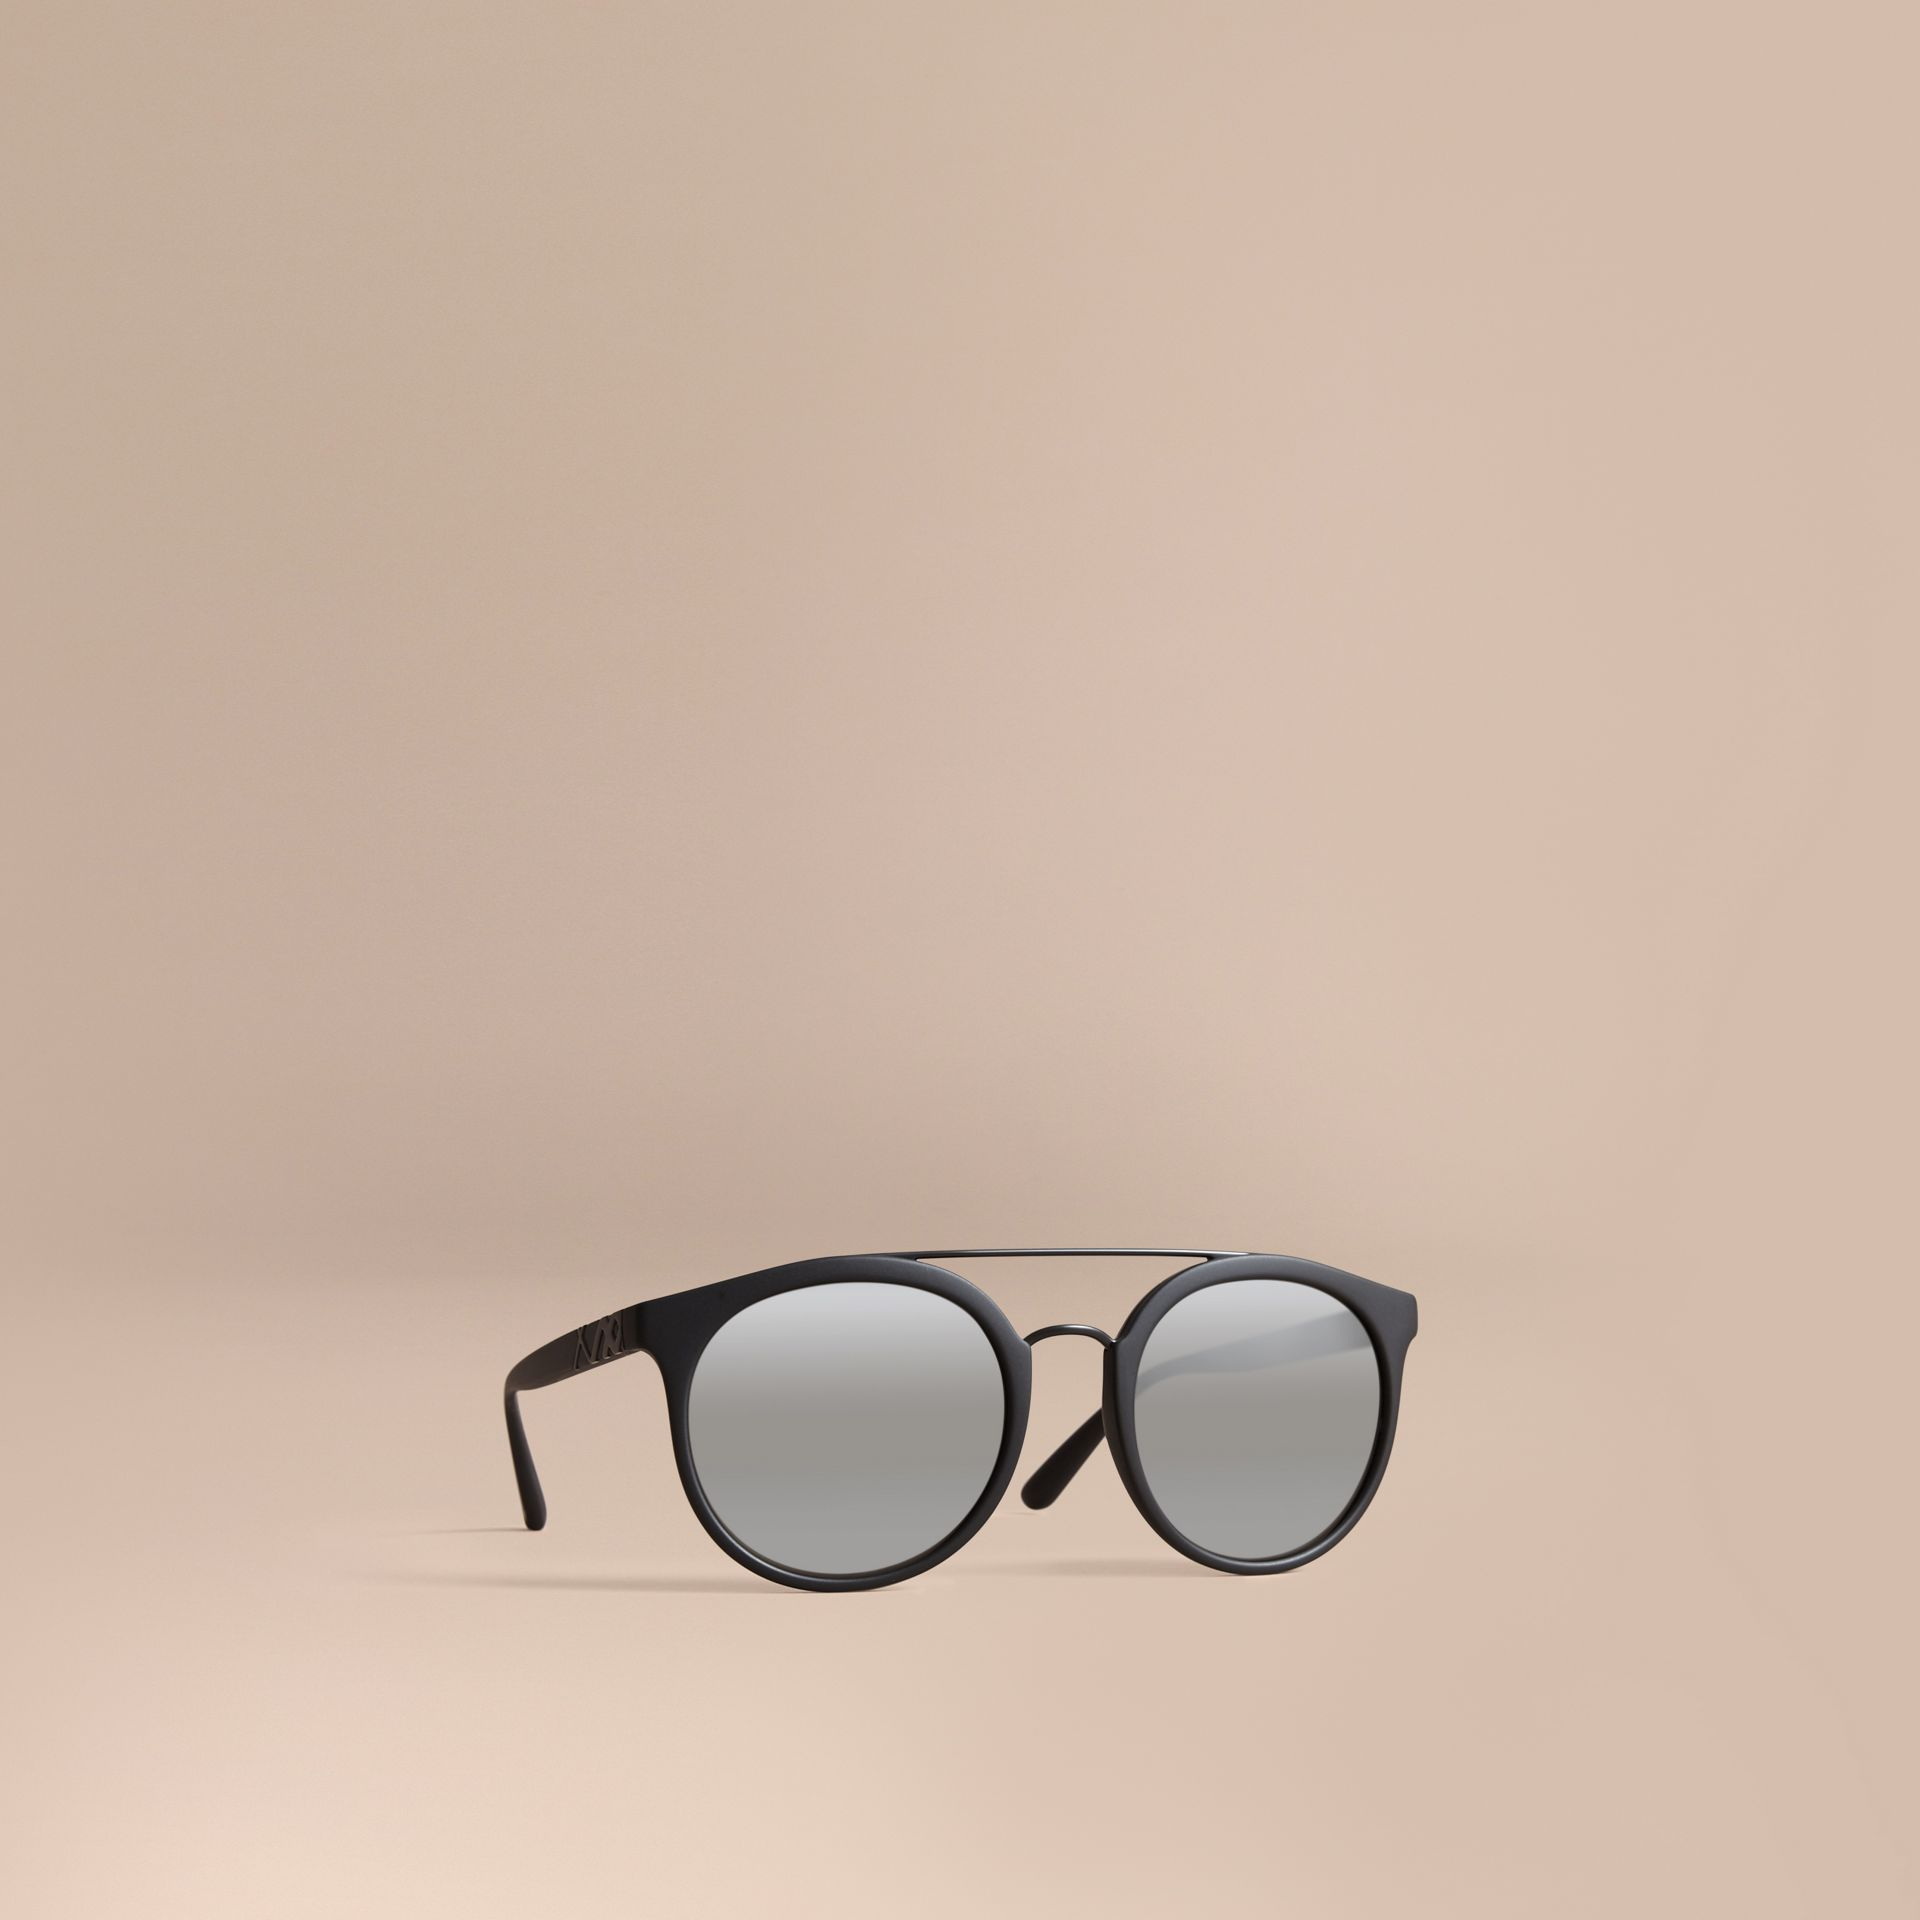 Top Bar Round Frame Sunglasses in Black - Men | Burberry Hong Kong - gallery image 1